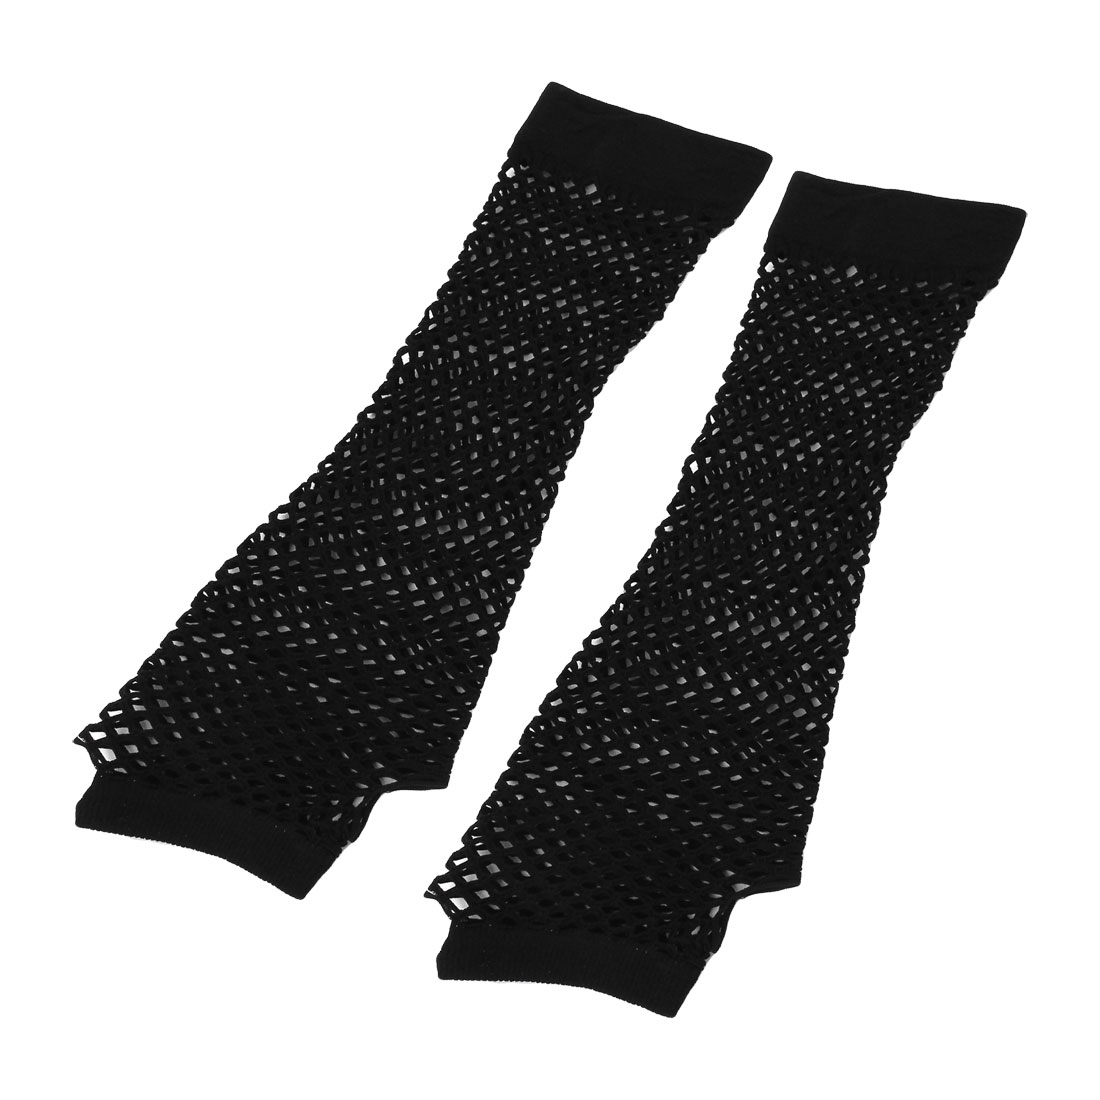 Woman Elbow Length Elastic Fishnet Fingerless Arm Warmers Gloves Pair